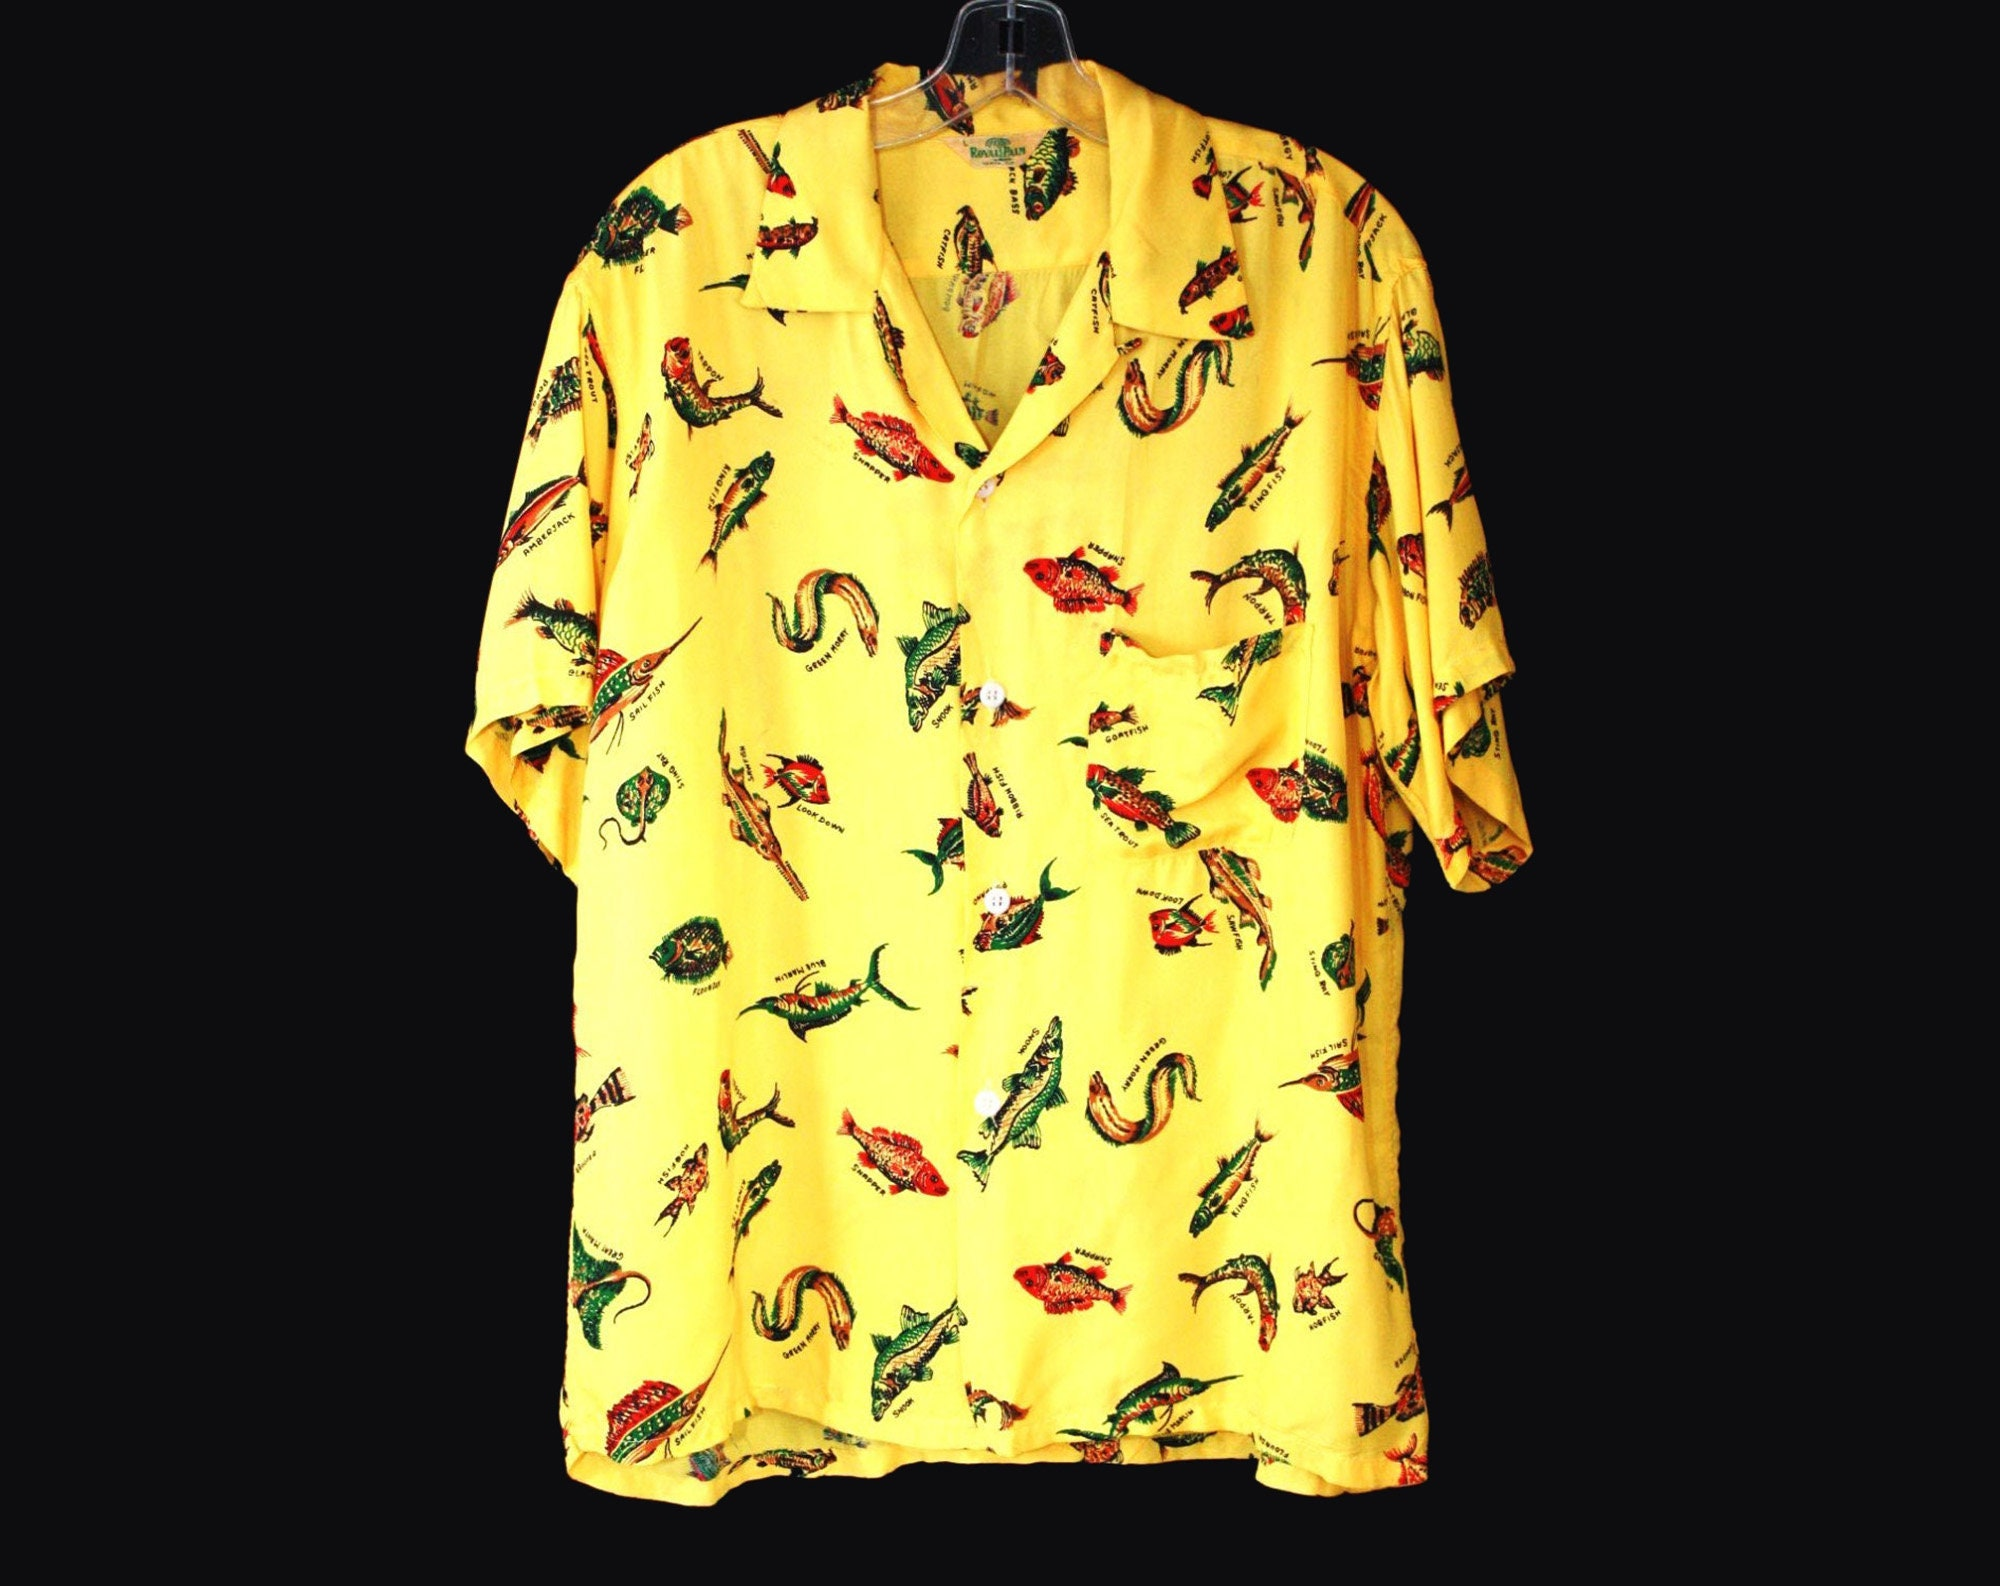 1940s Men's Shirts, Sweaters, Vests Size Large 1940S Mens Hawaiian Style Shirt - Florida Fishes Print Yellow Cold Rayon Top Mens 40S Rarity Royal Palm Tampa Chest 46 $35.95 AT vintagedancer.com